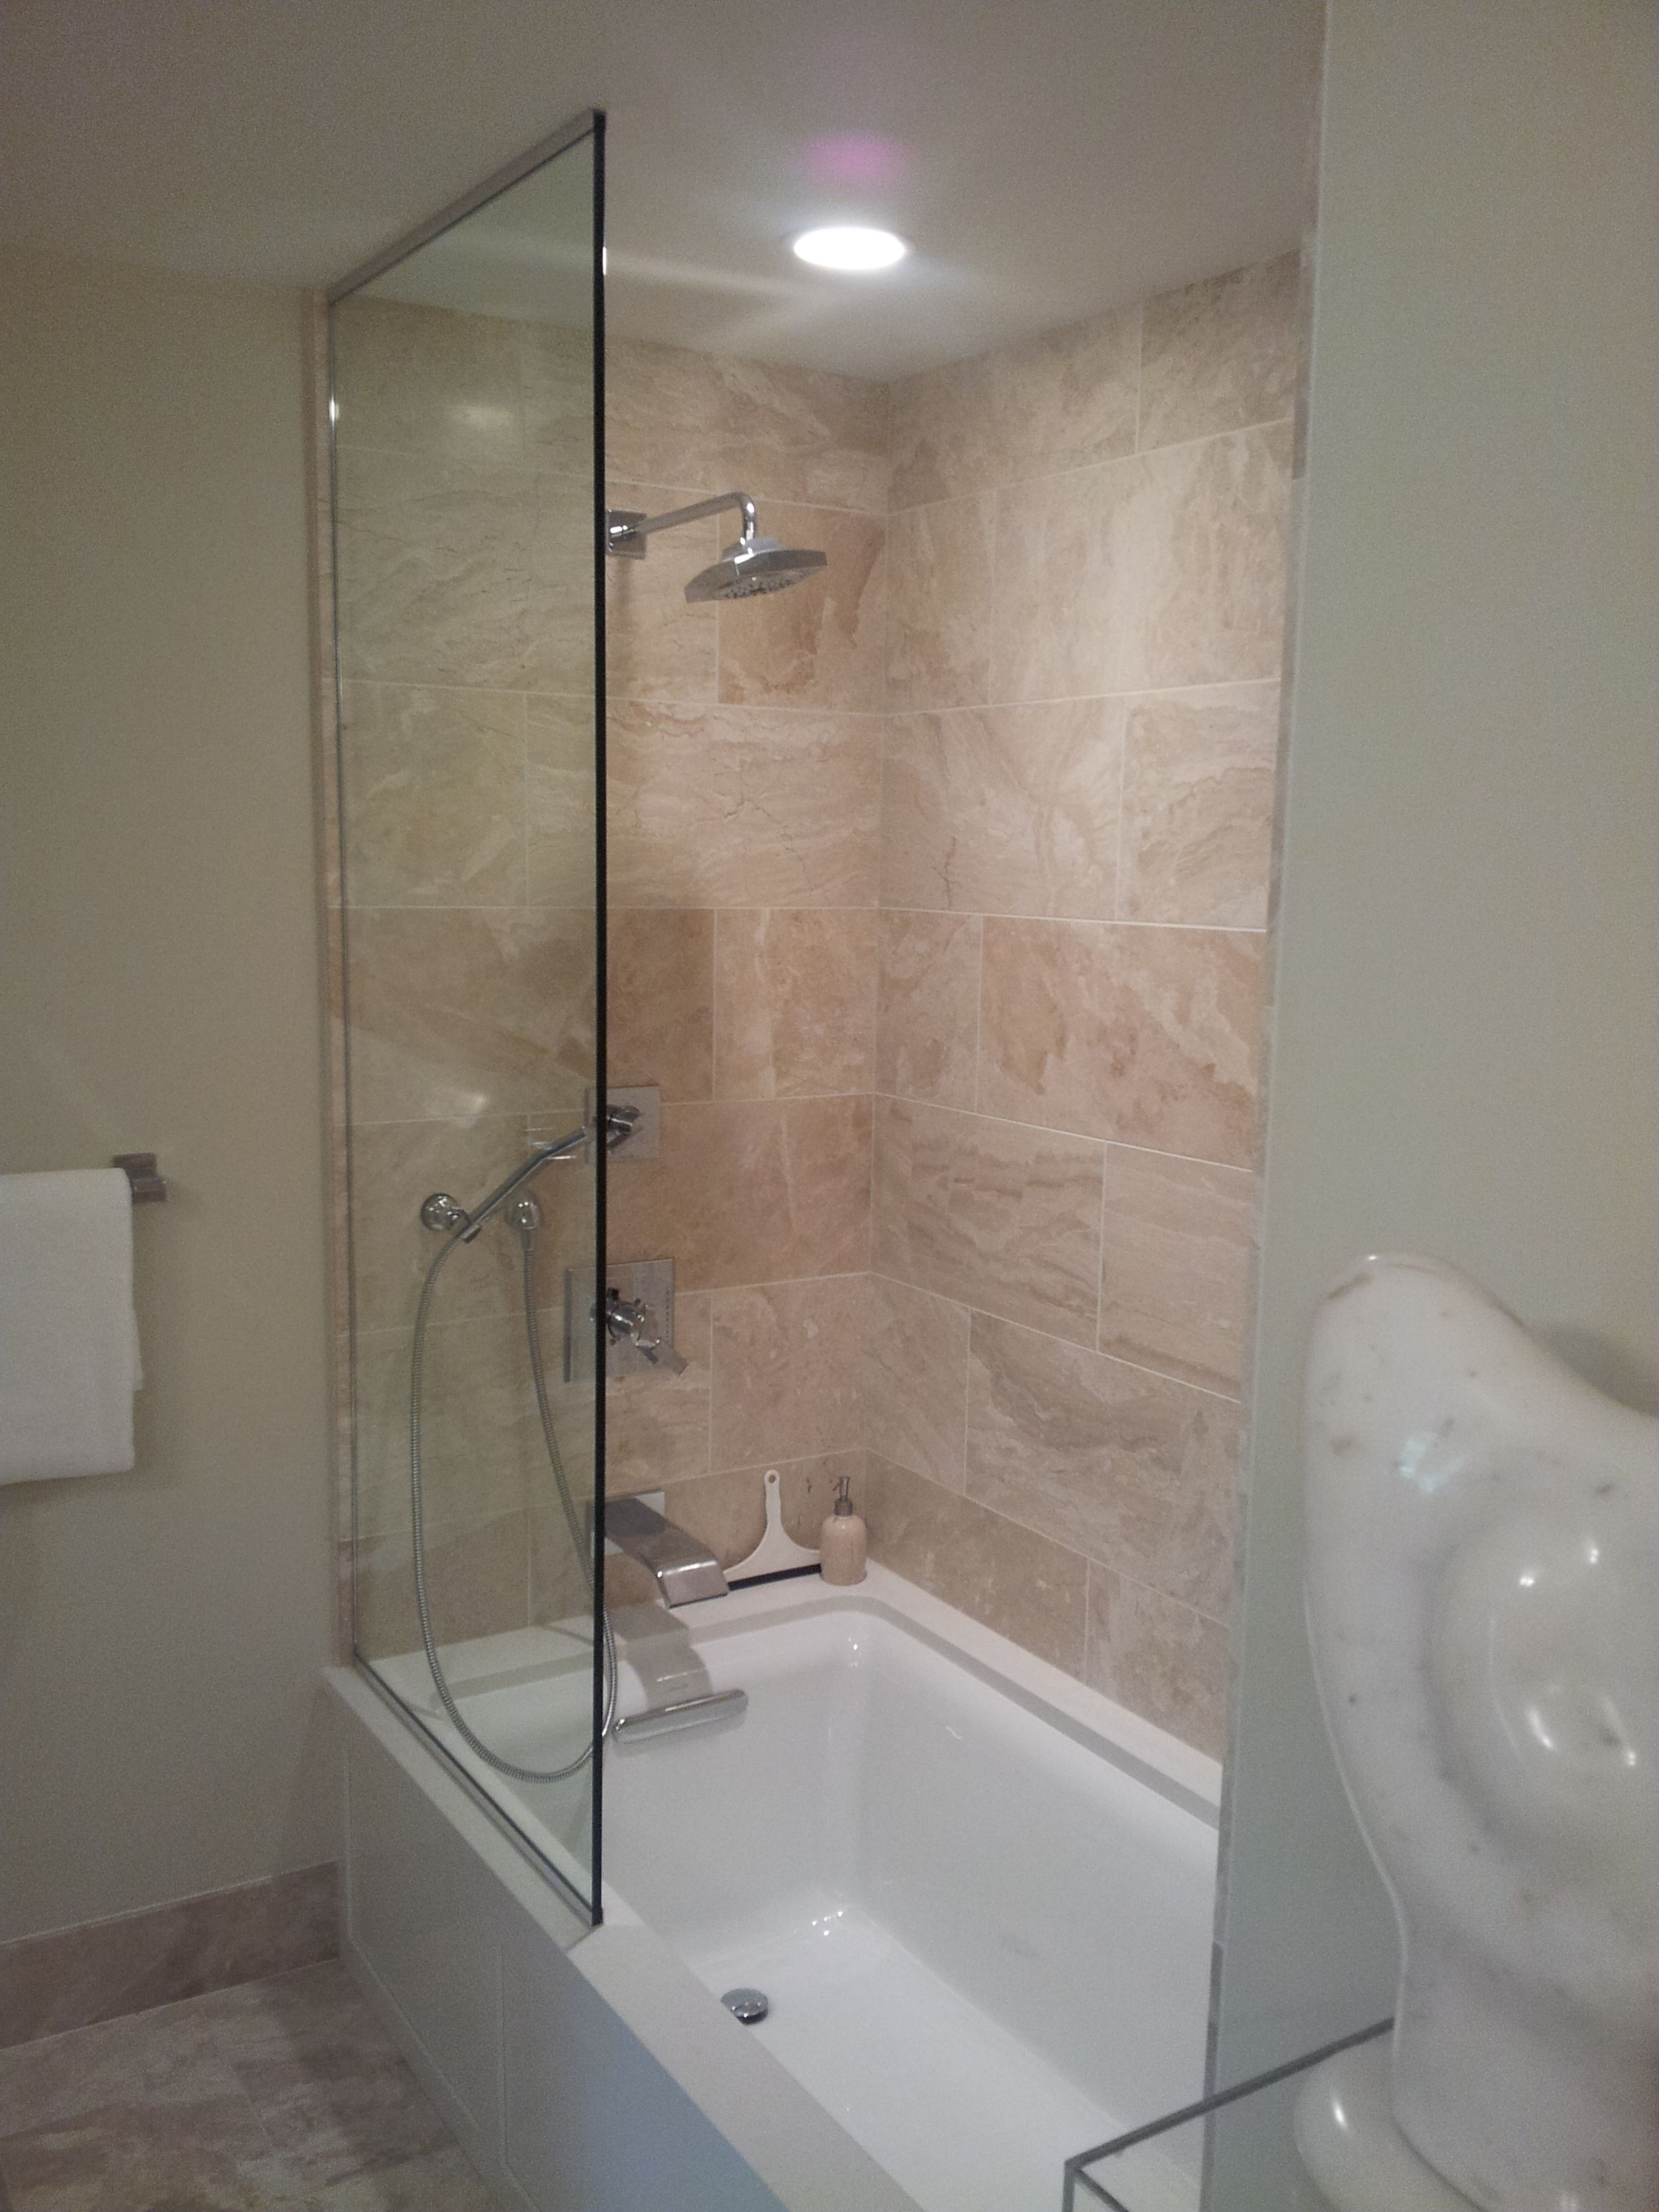 Frameless Splash Guard Frameless Shower Enclosures Custom Shower Doors Shower Enclosure